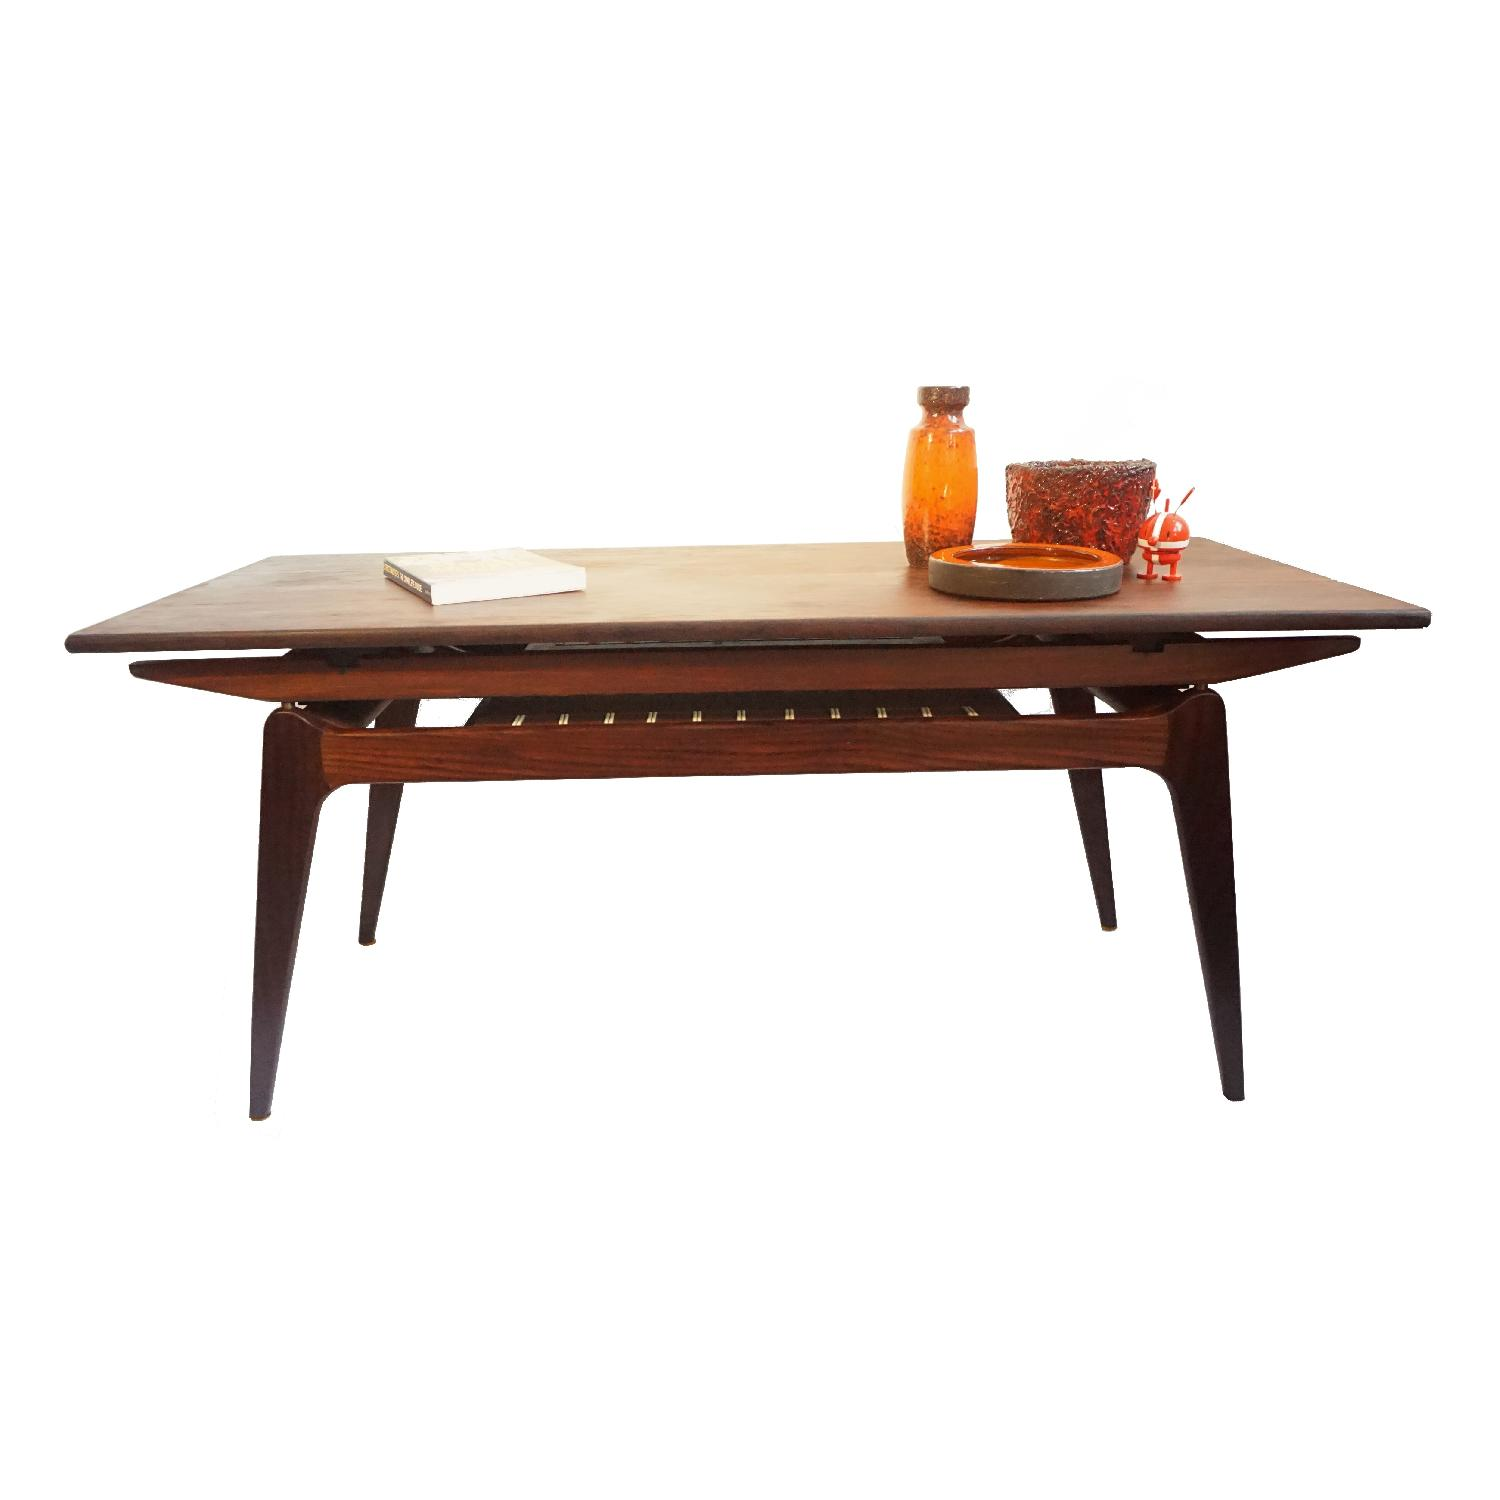 Copenhagen Coffee/Dining table - image-7